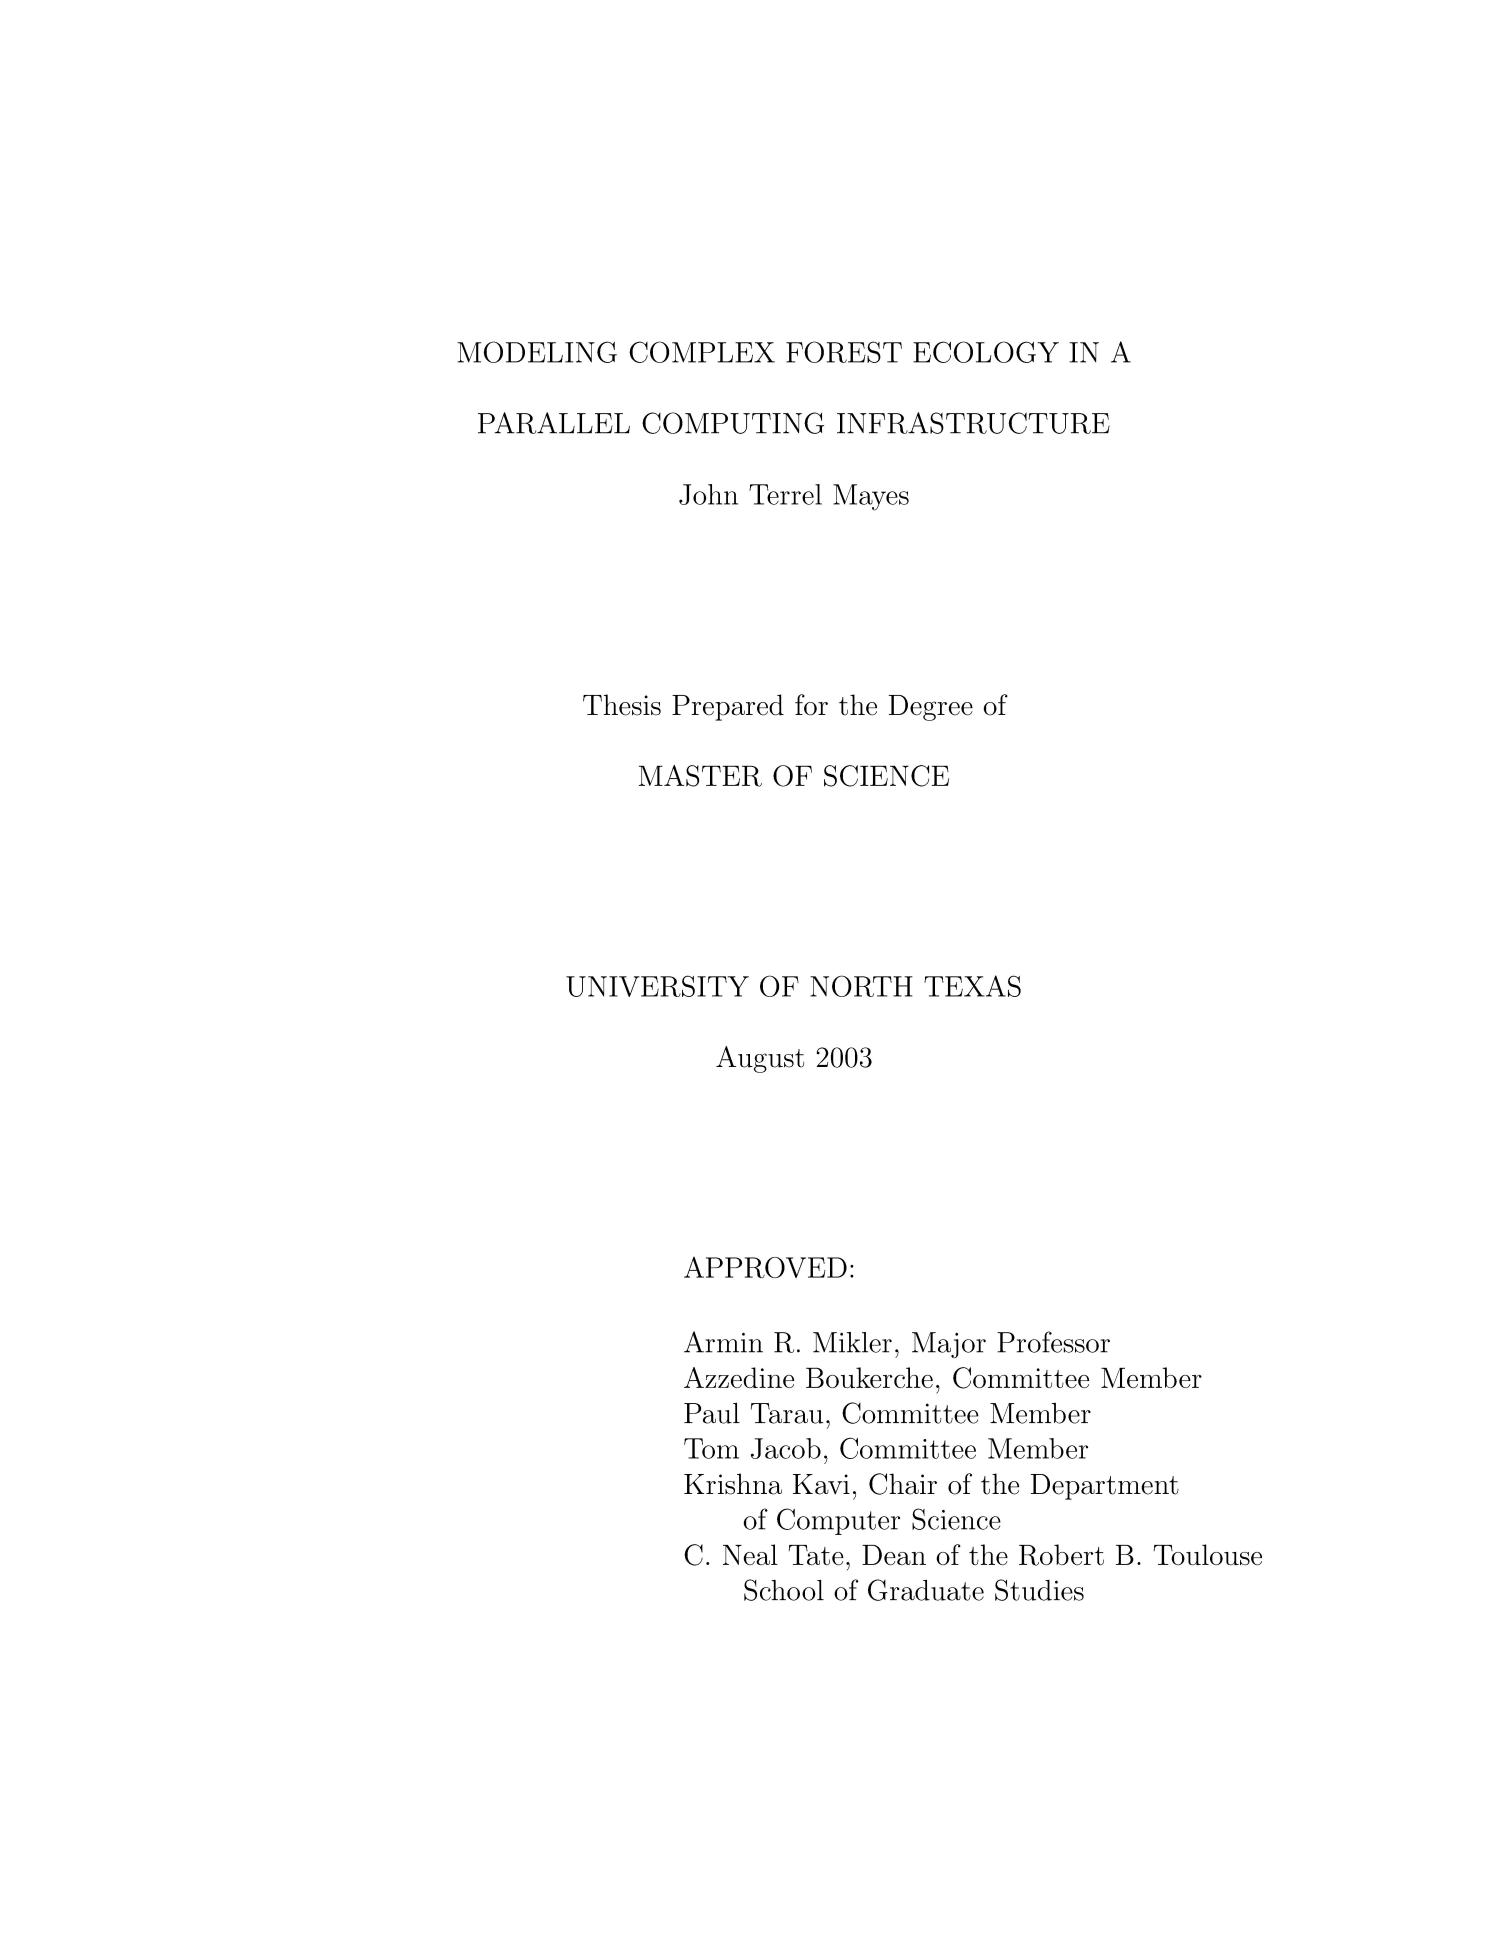 Modeling Complex Forest Ecology in a Parallel Computing Infrastructure                                                                                                      Title Page